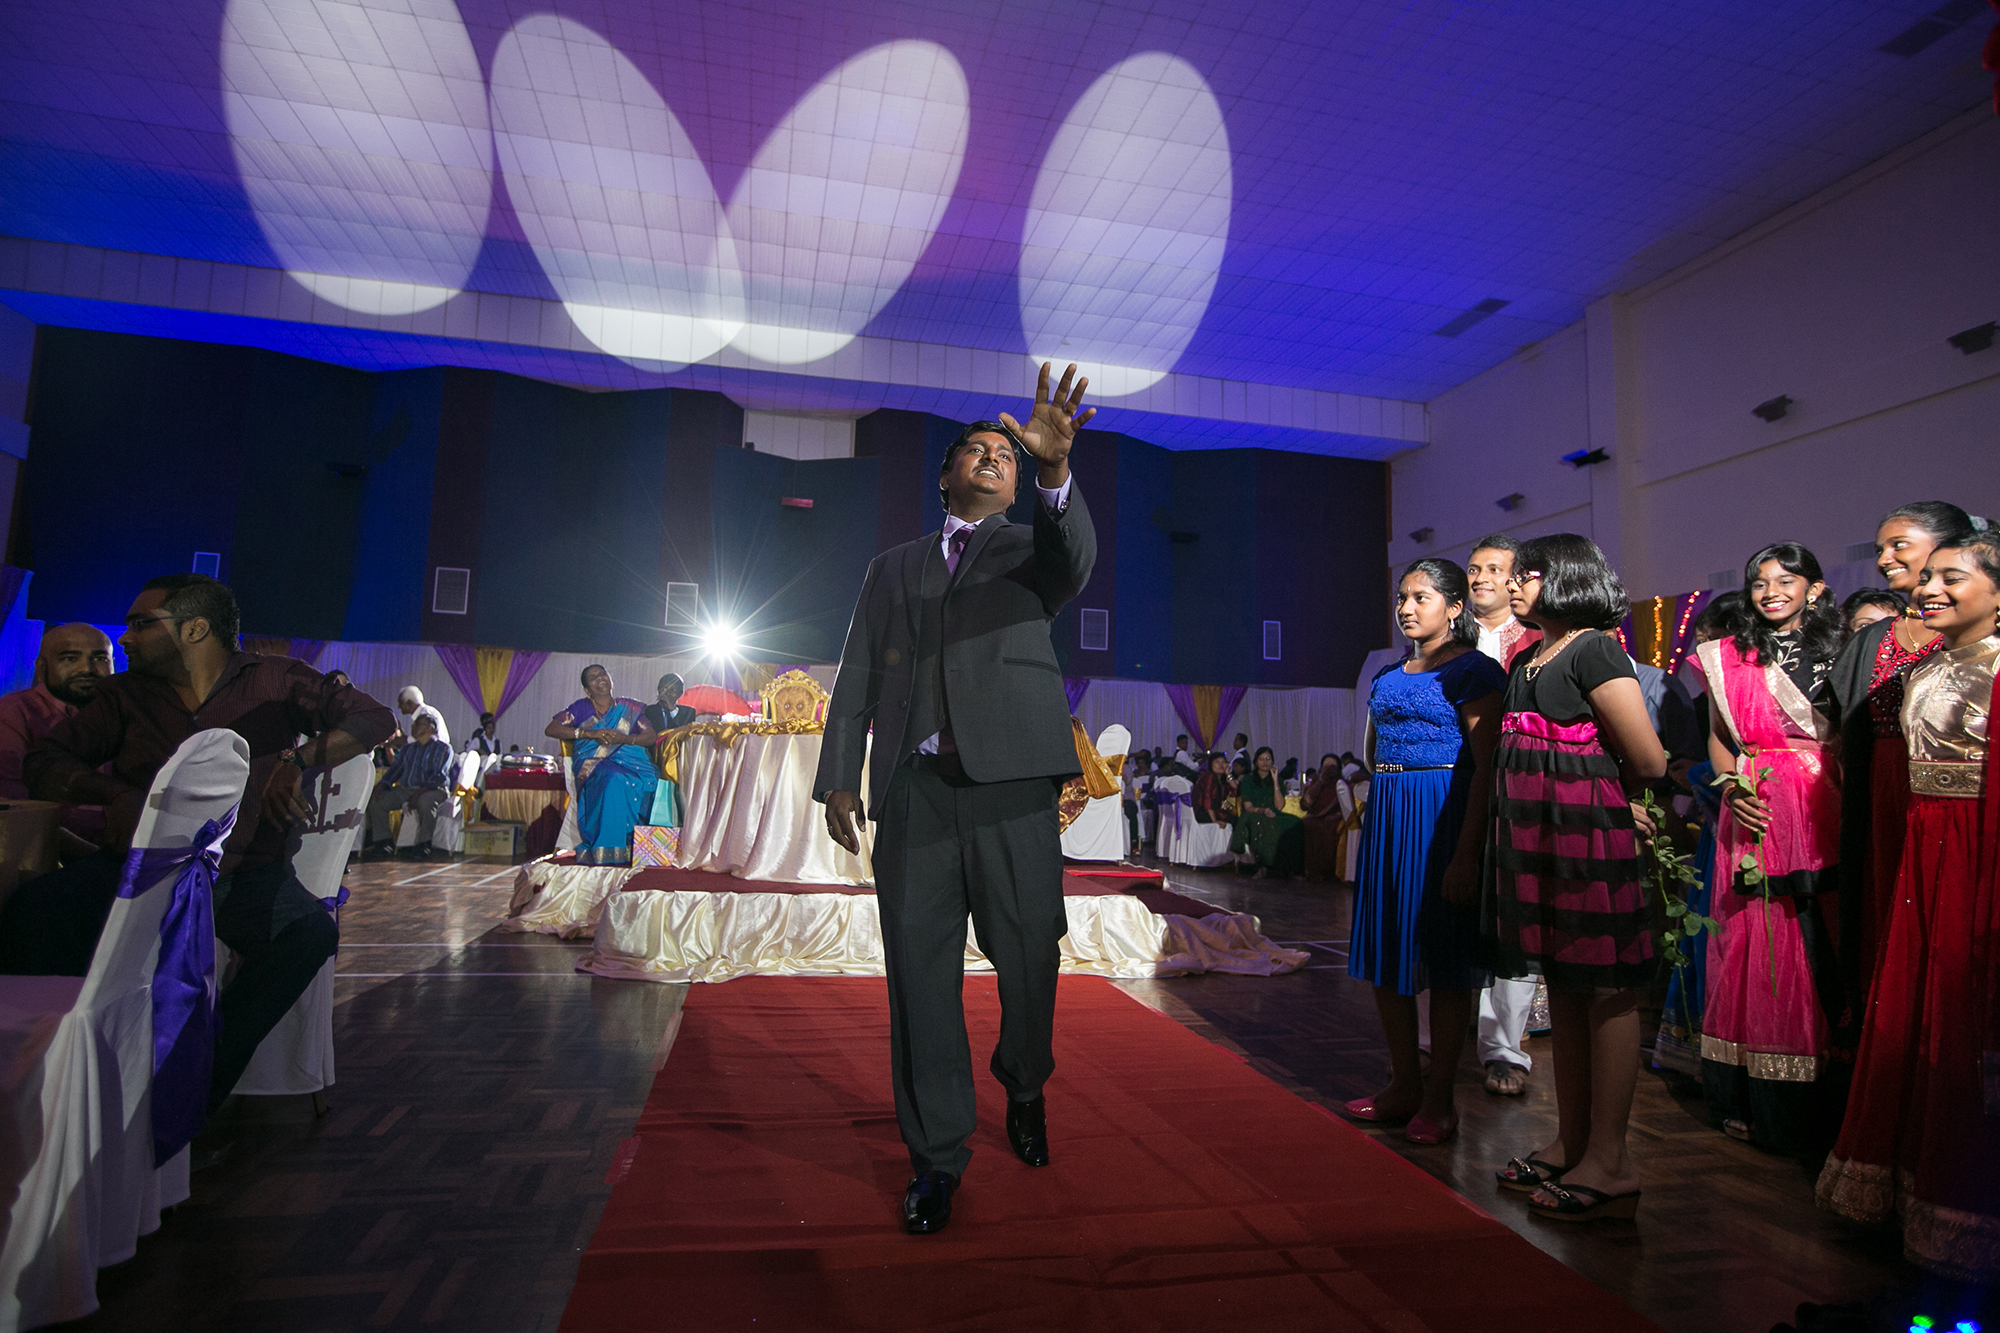 Groom performance to the bride